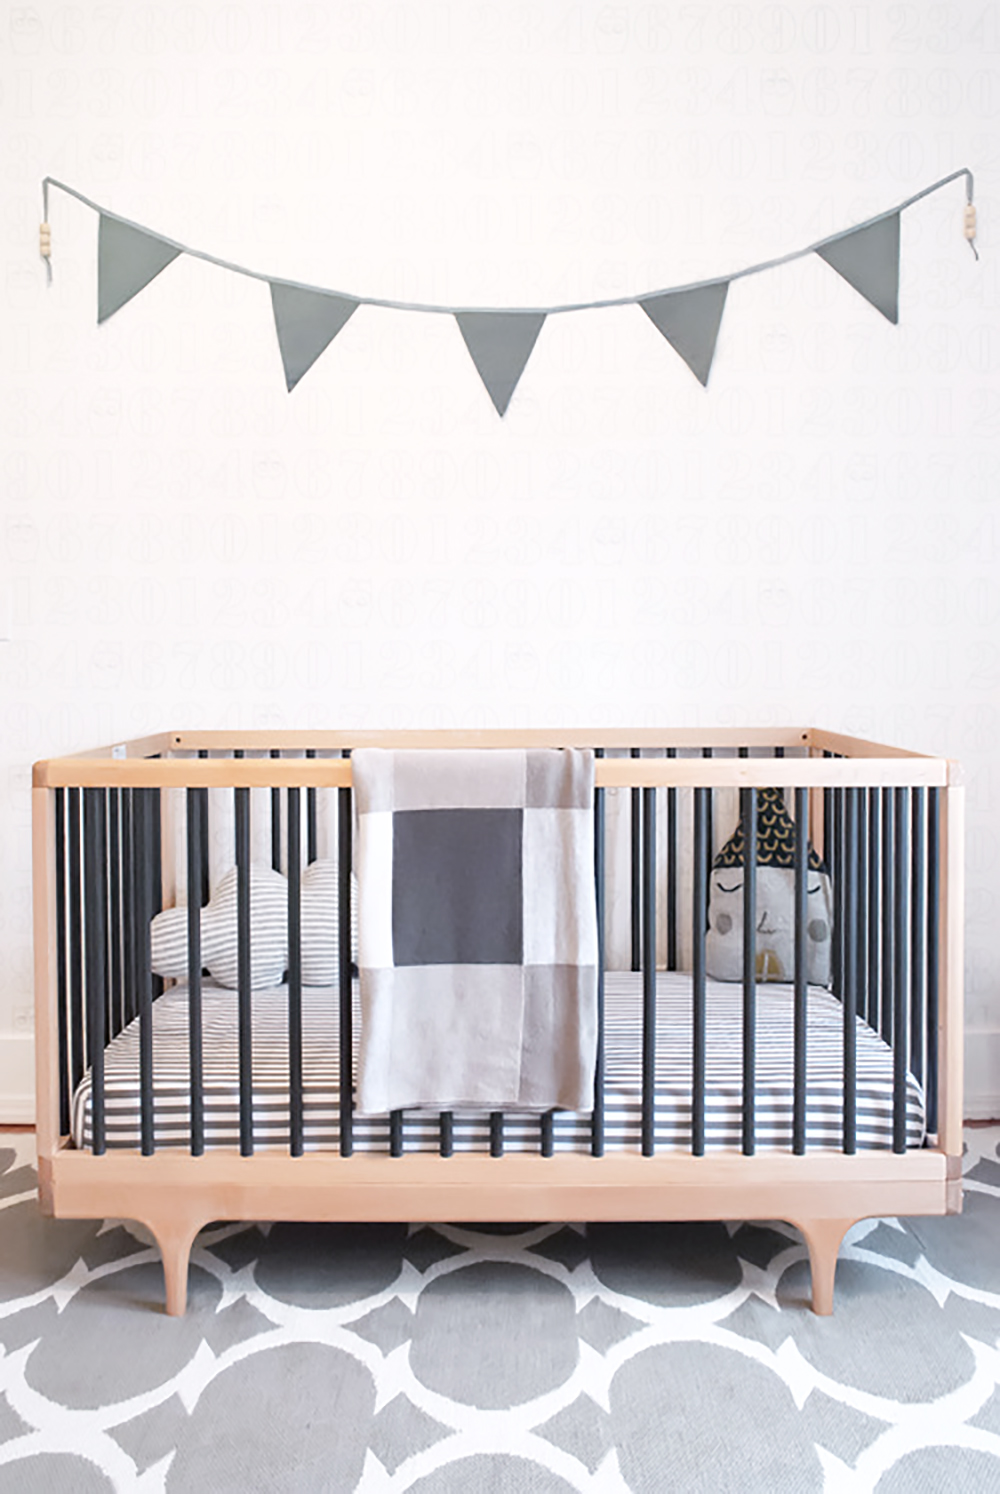 Caravan Crib in interior designer Melissa Barling's children's room